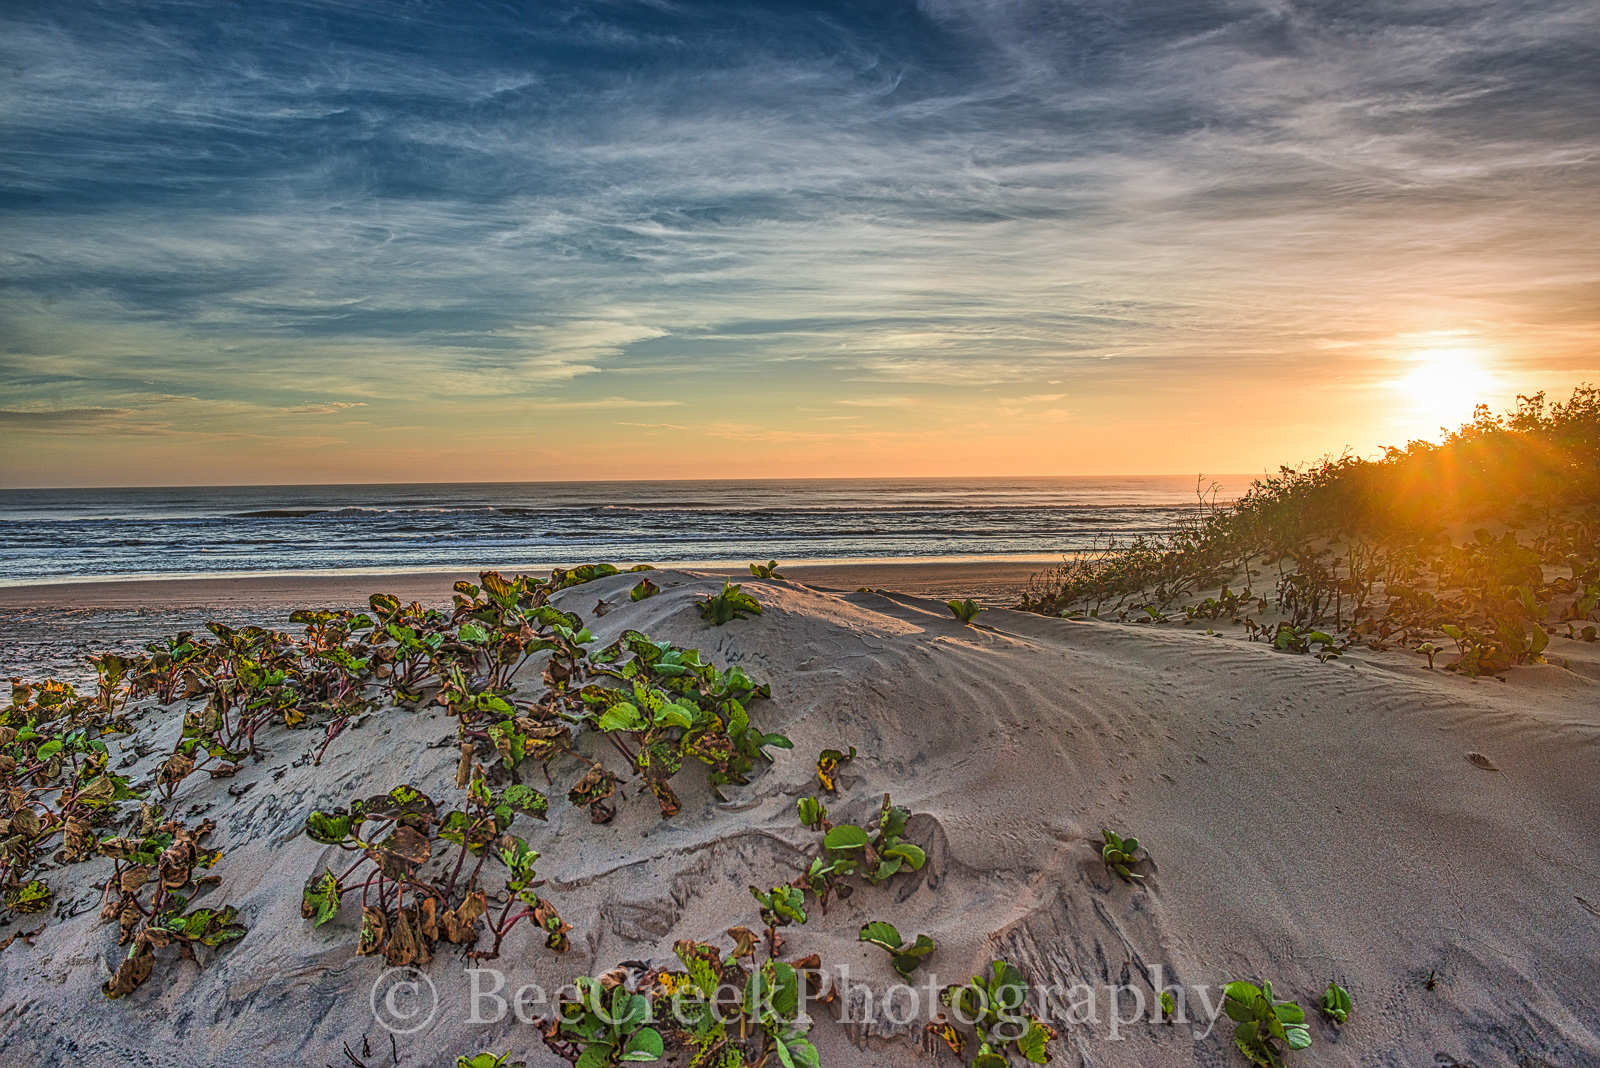 Sand Dunes at Sunrise -  Took this sunrise photo of a beach scene as the sun cast a bit of color along the the horizon over Padre...